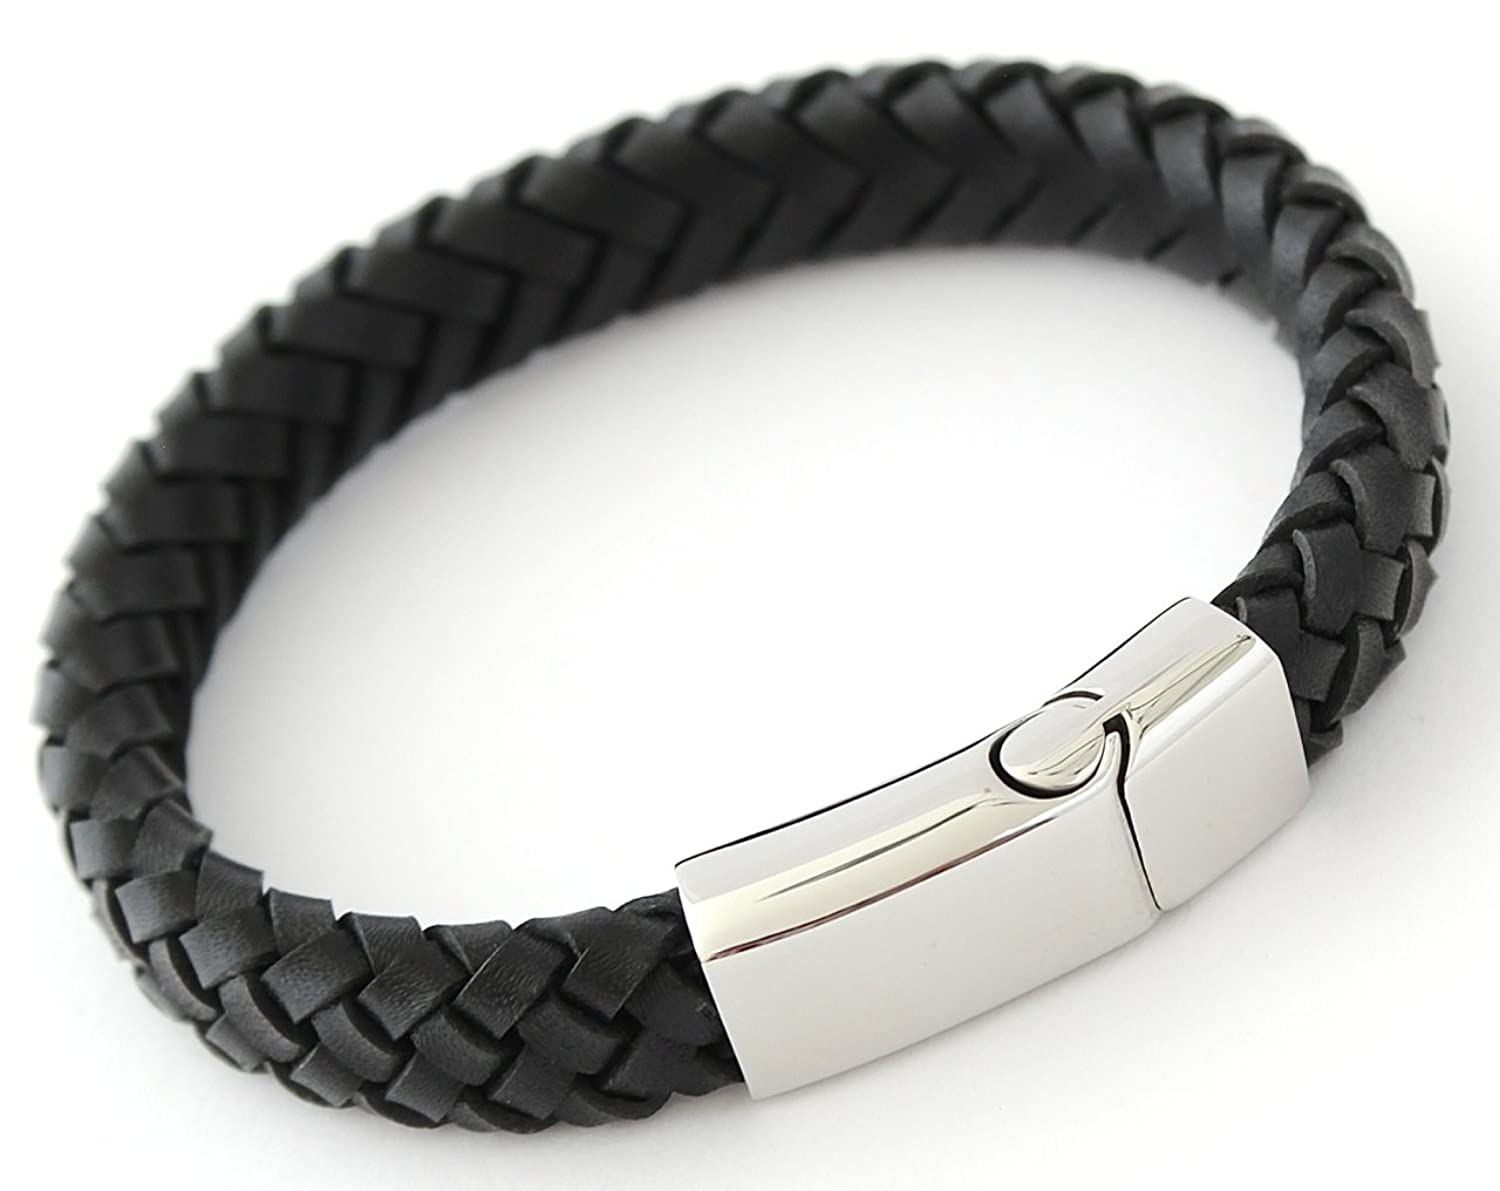 jewelry bracelet flat az steel leather braided stainless mens black bling cb cord back